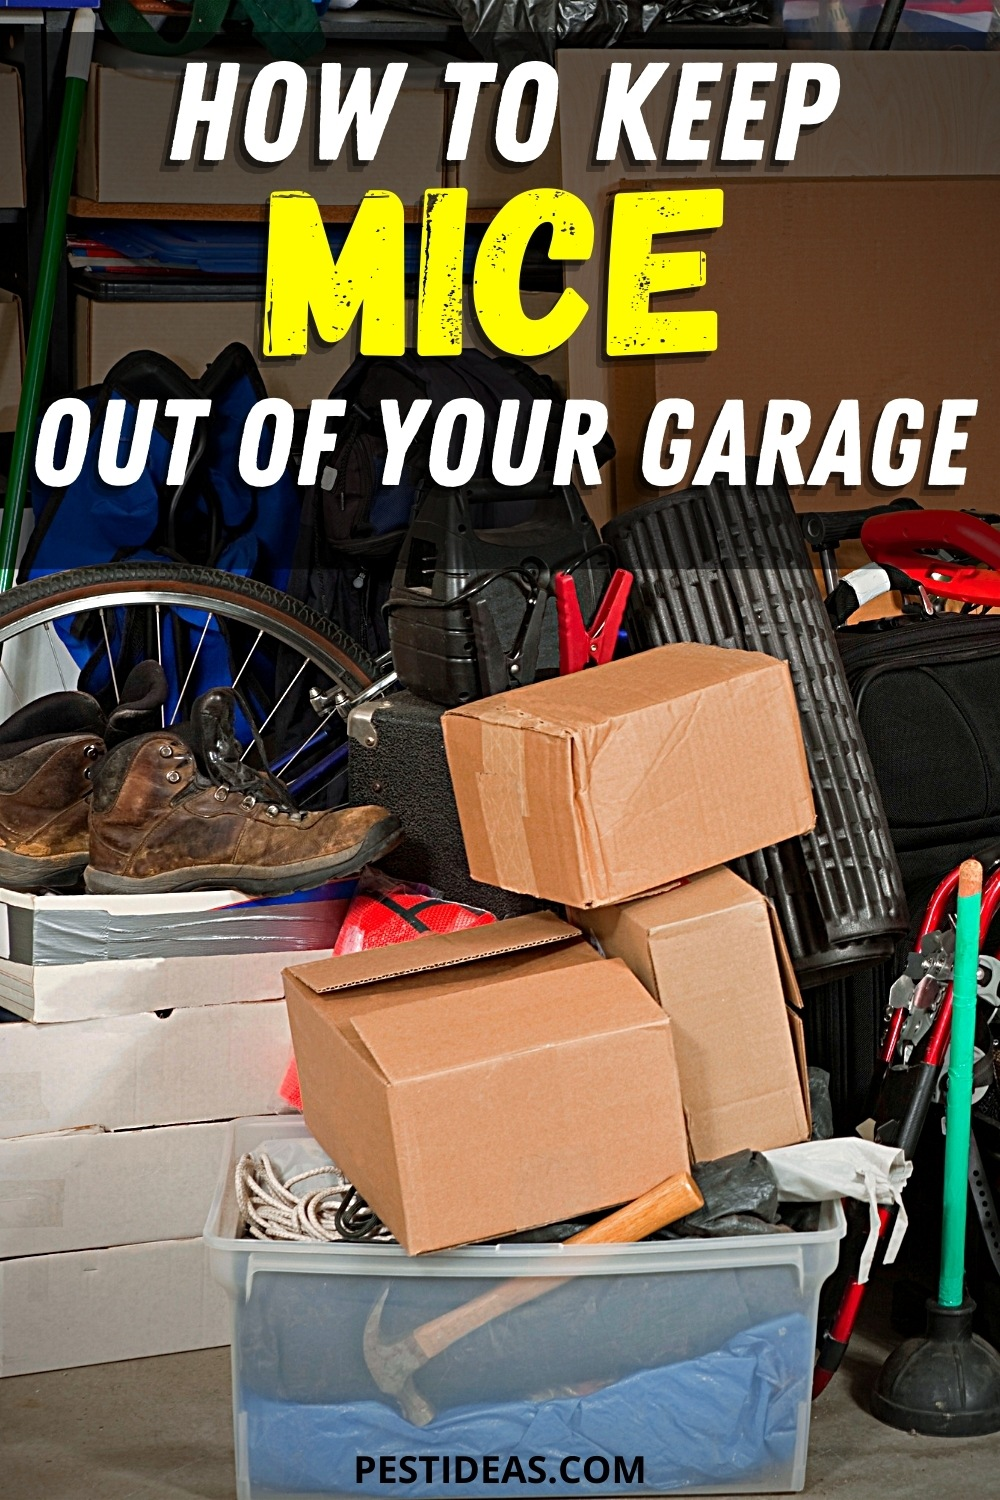 How to keep mice out of your garage